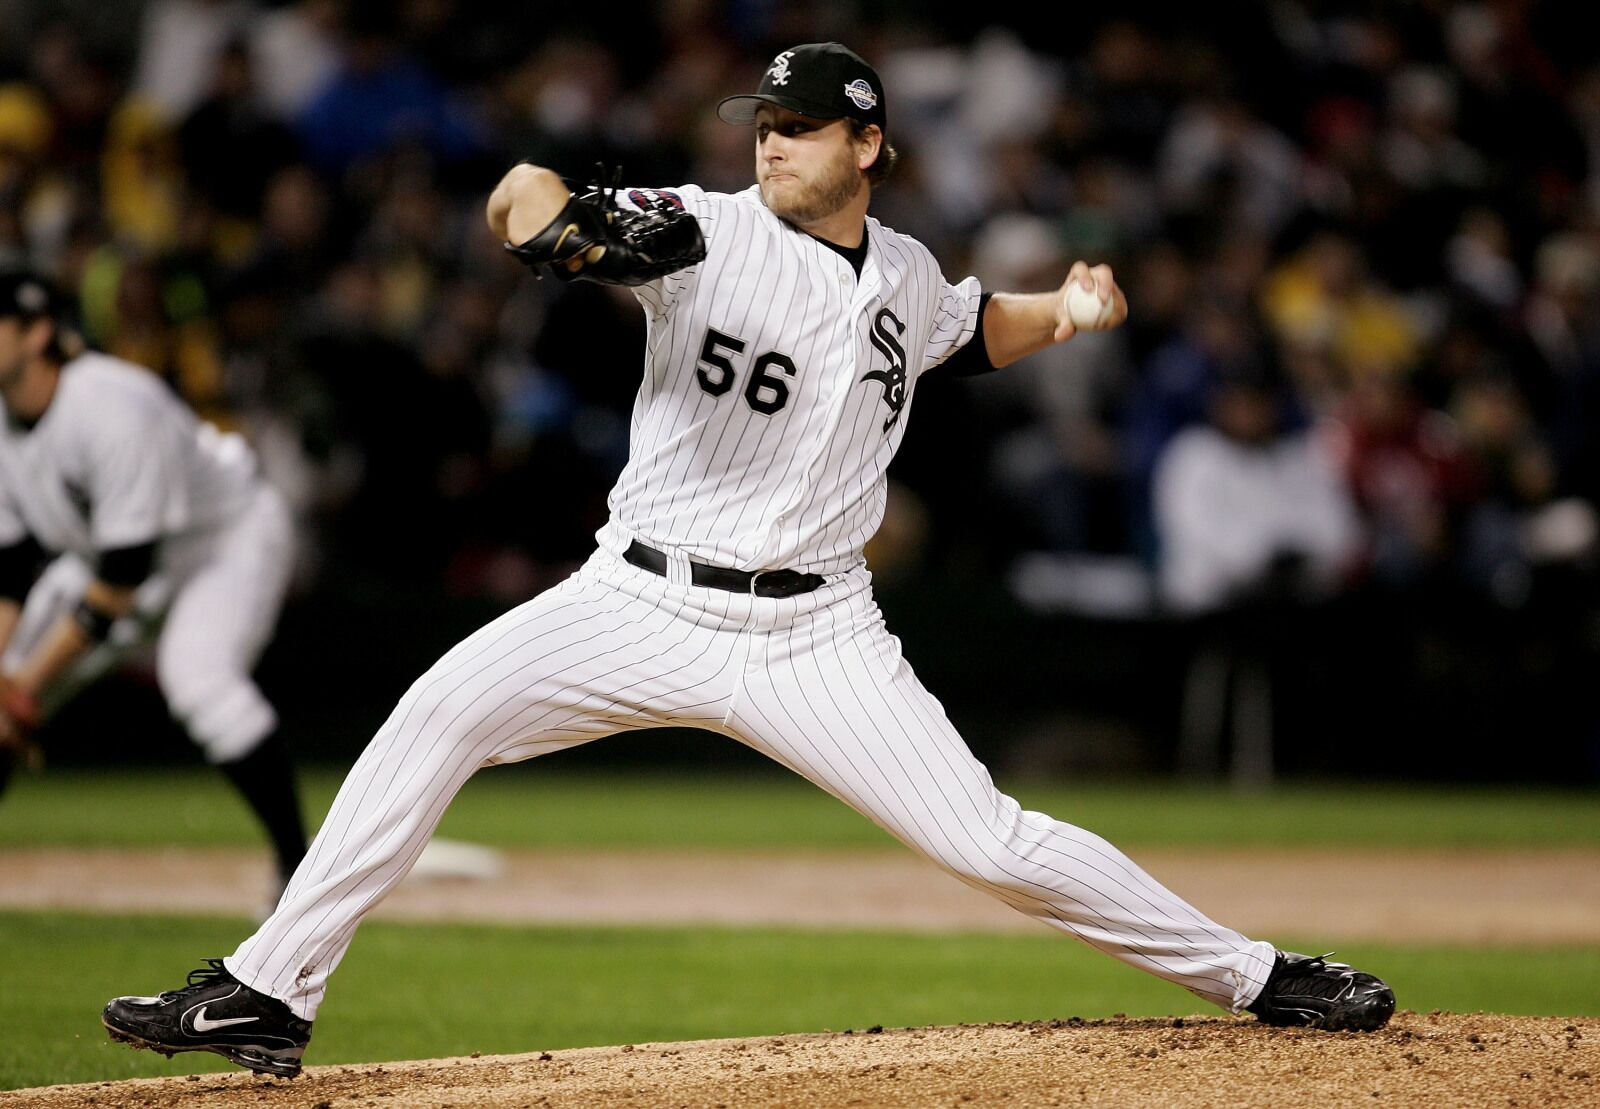 Chicago White Sox: 2005 ALCS will never be recreated